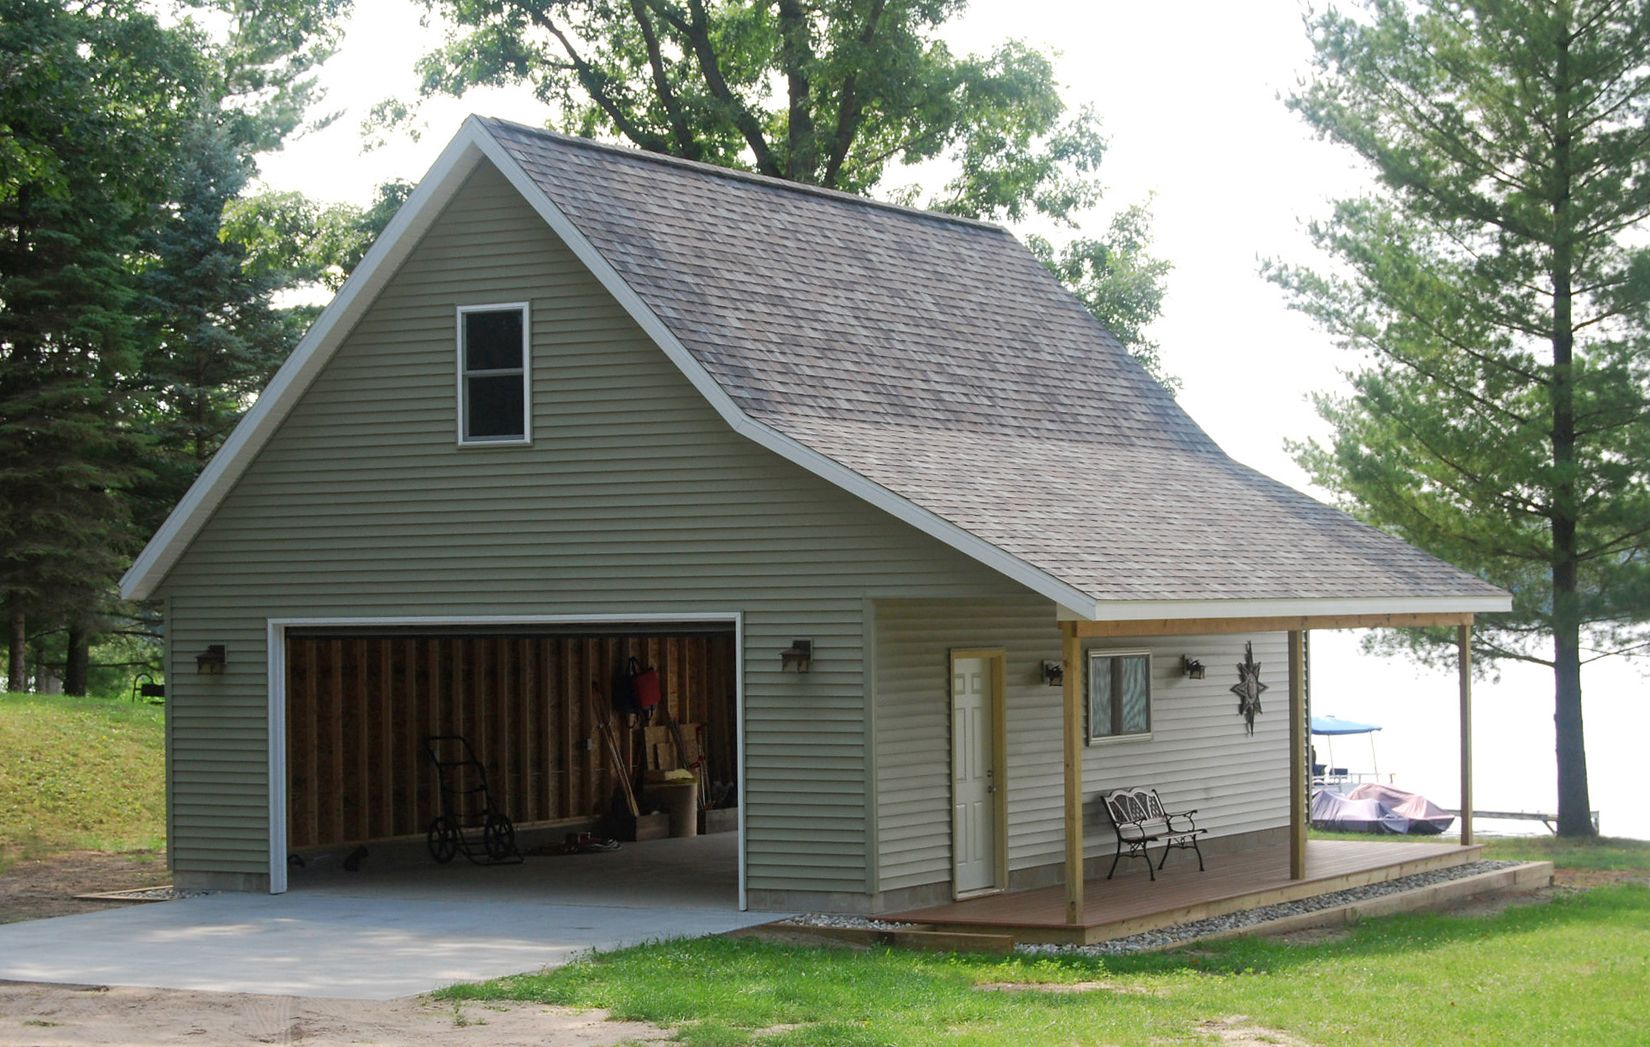 Pole barn garage plans welcome to jb custom homes where for Pole building designs free